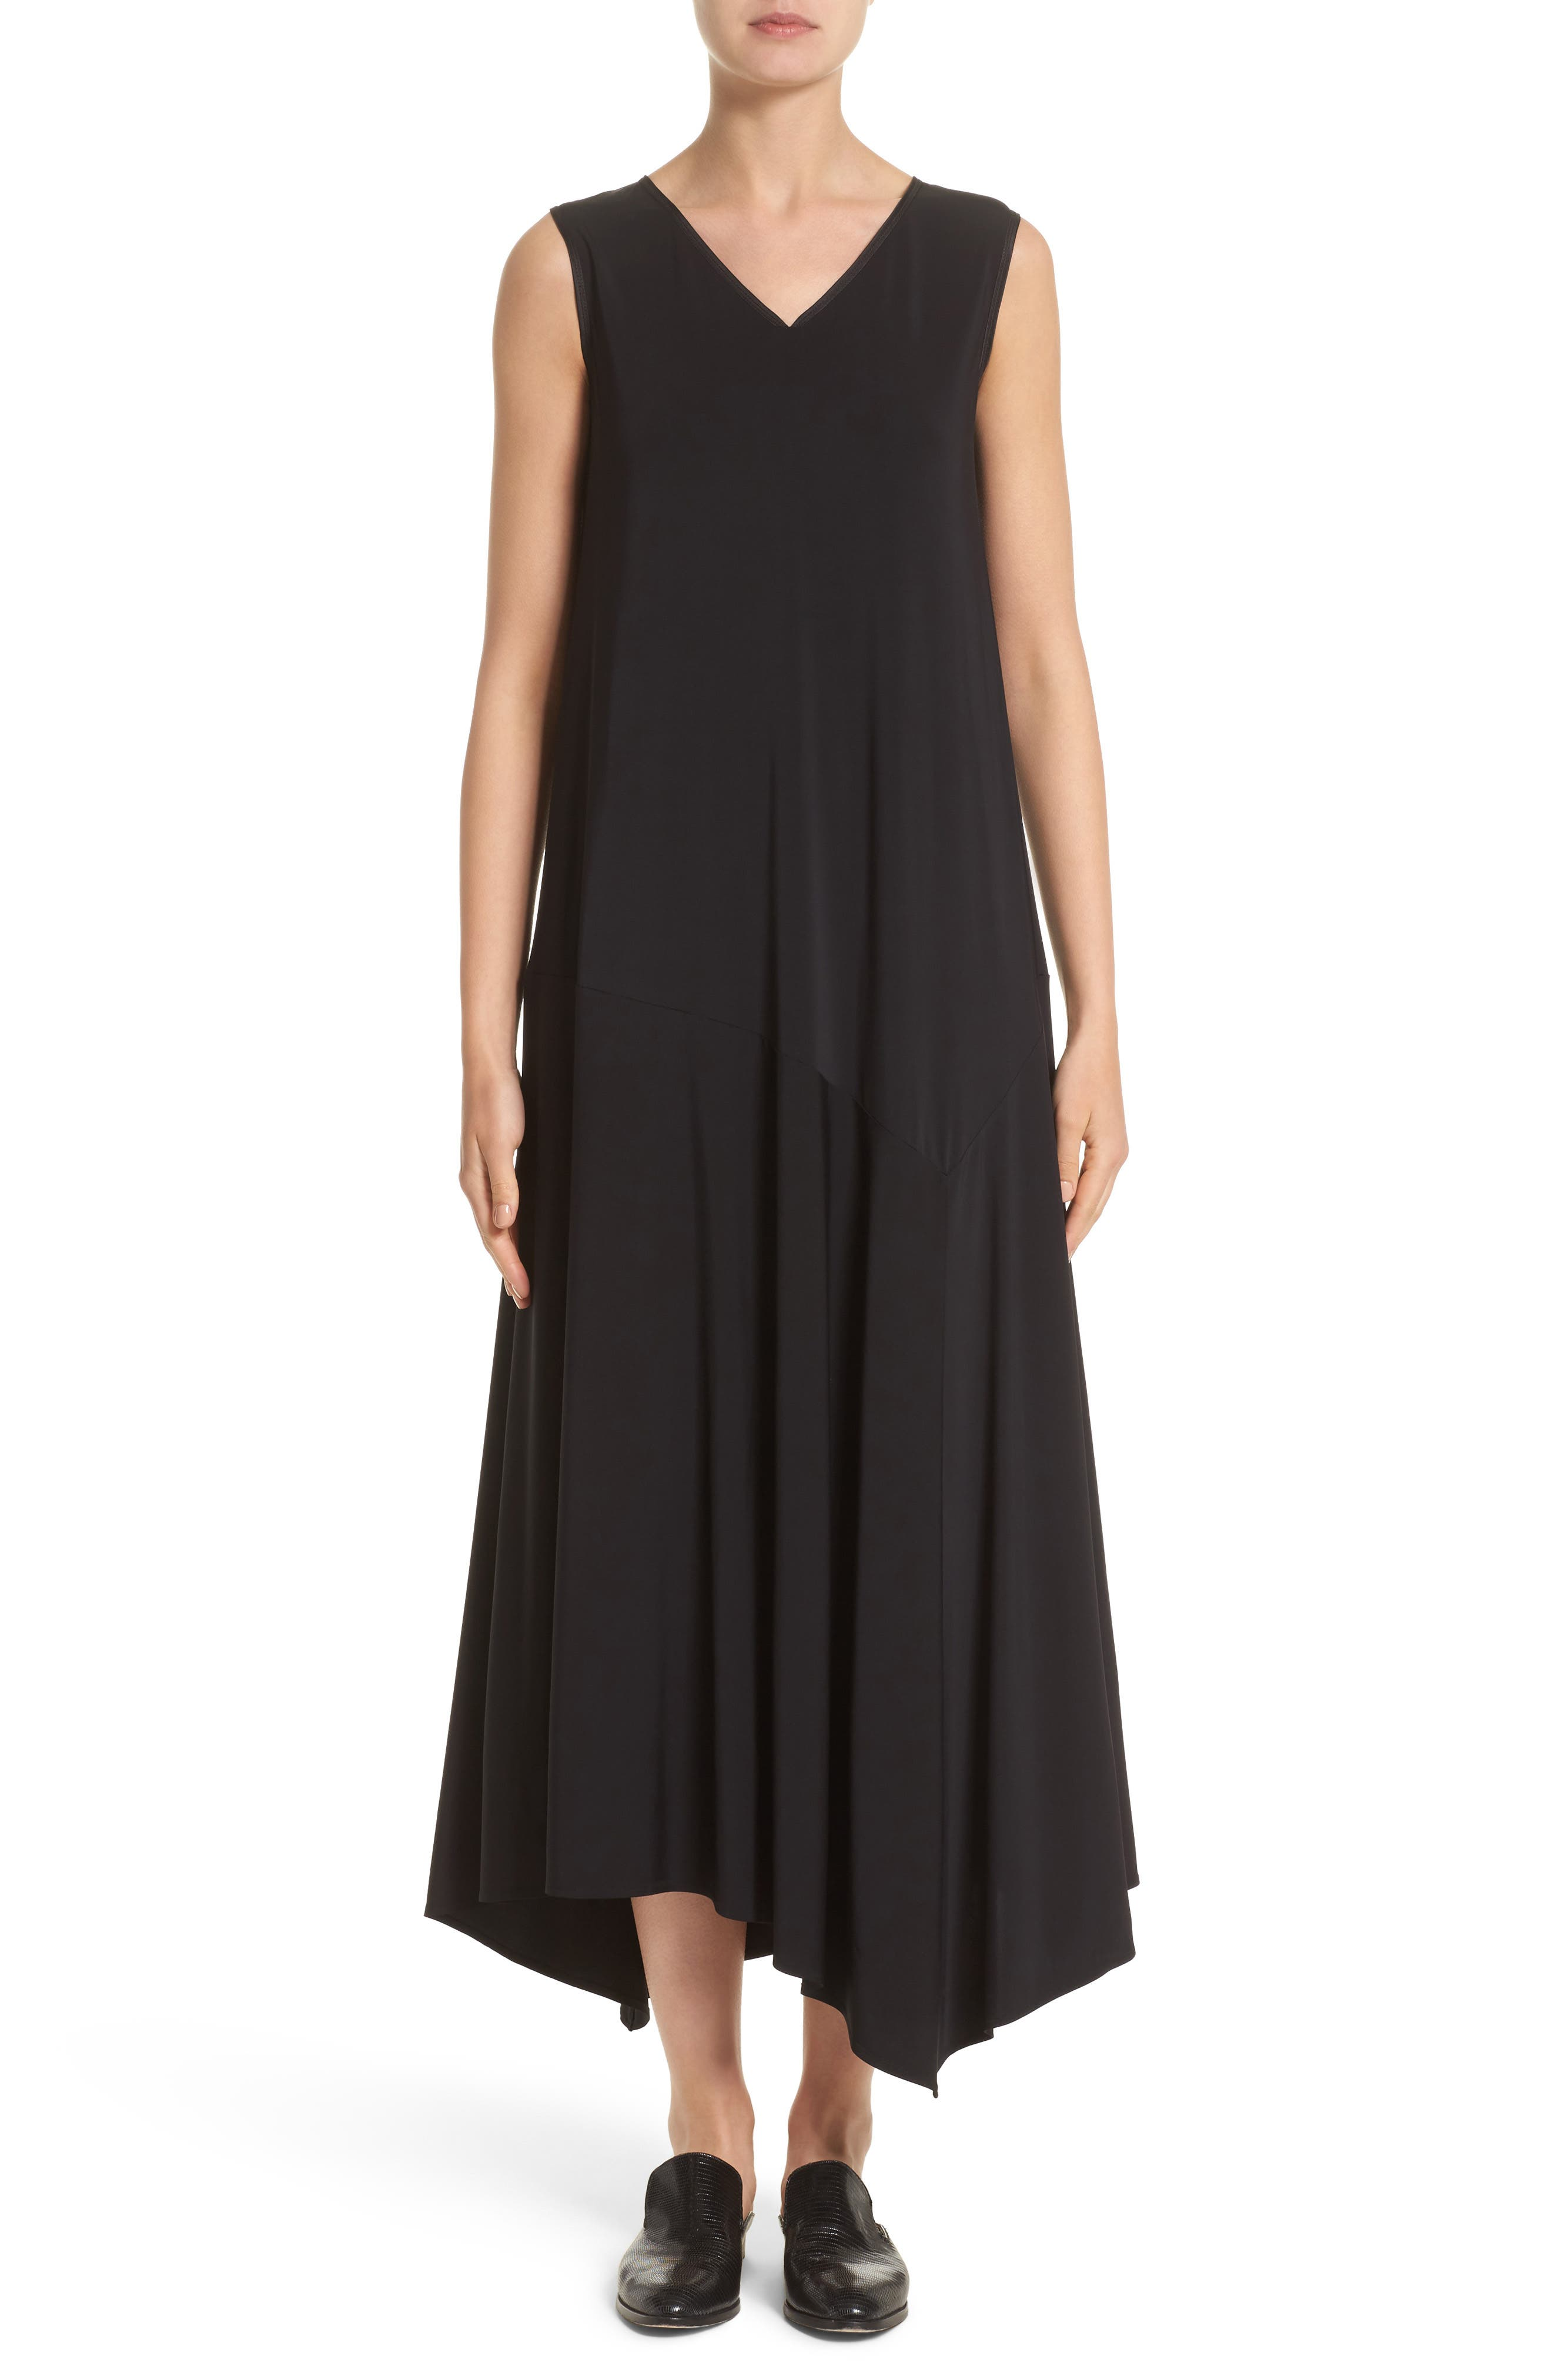 Cultivated Crepe Jersey Asymmetrical Dress,                         Main,                         color, Black